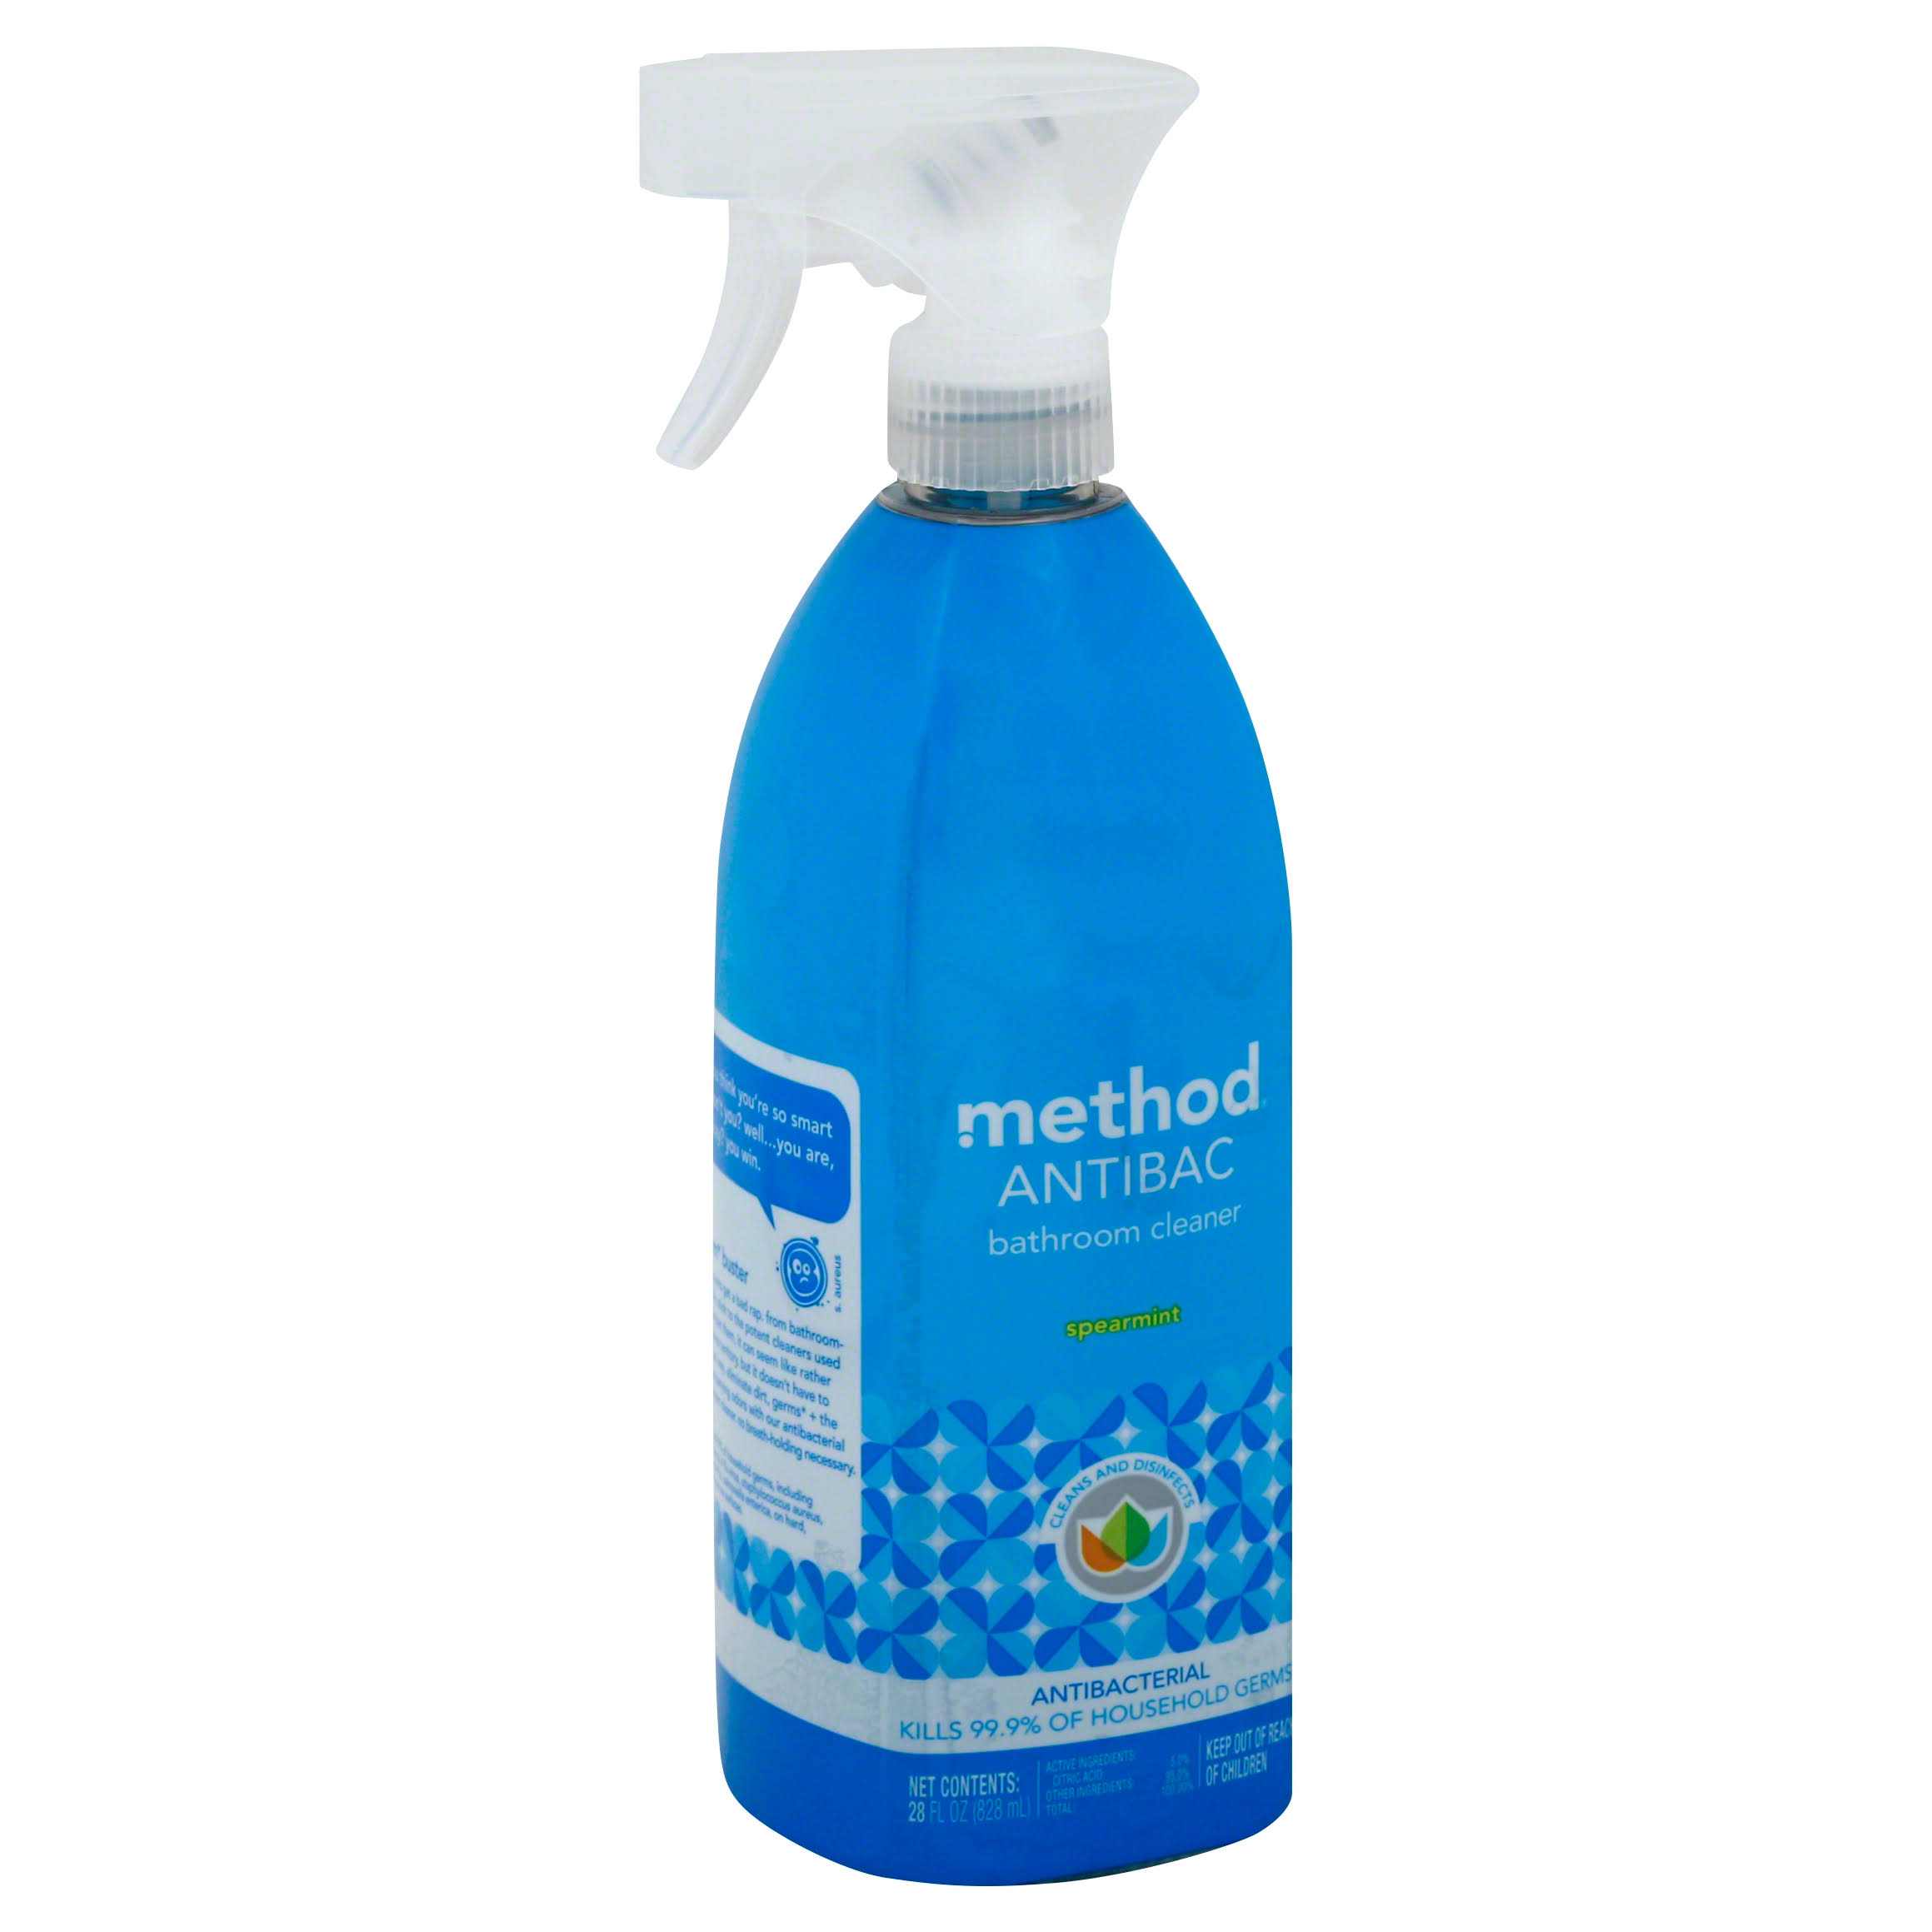 Method Antibacterial Cleaner - Spearmint, 28oz